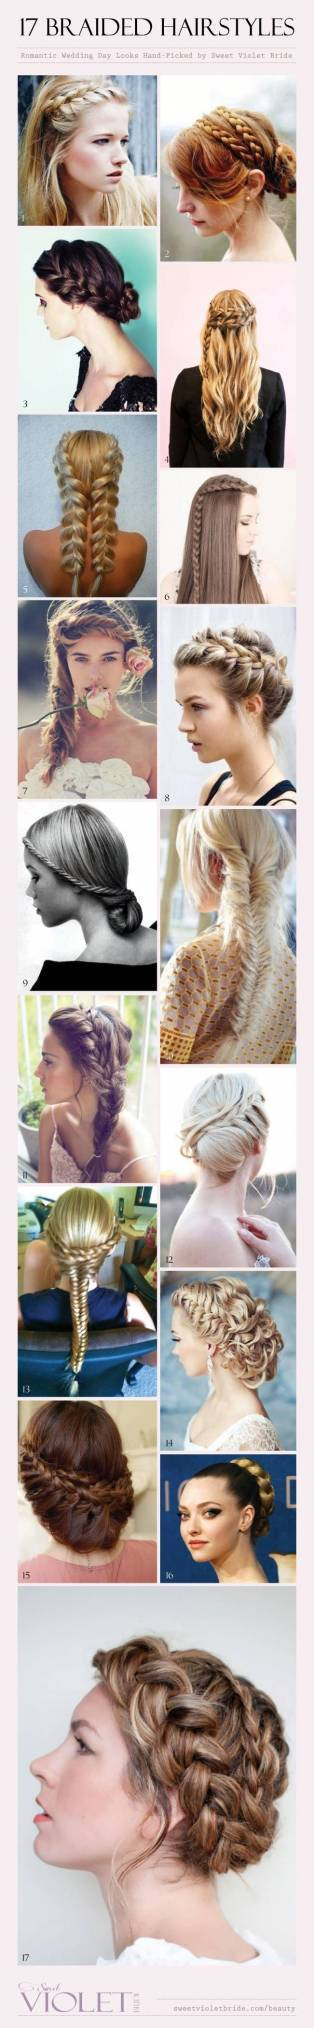 17 Braided Hairstyles for Your Wedding Day